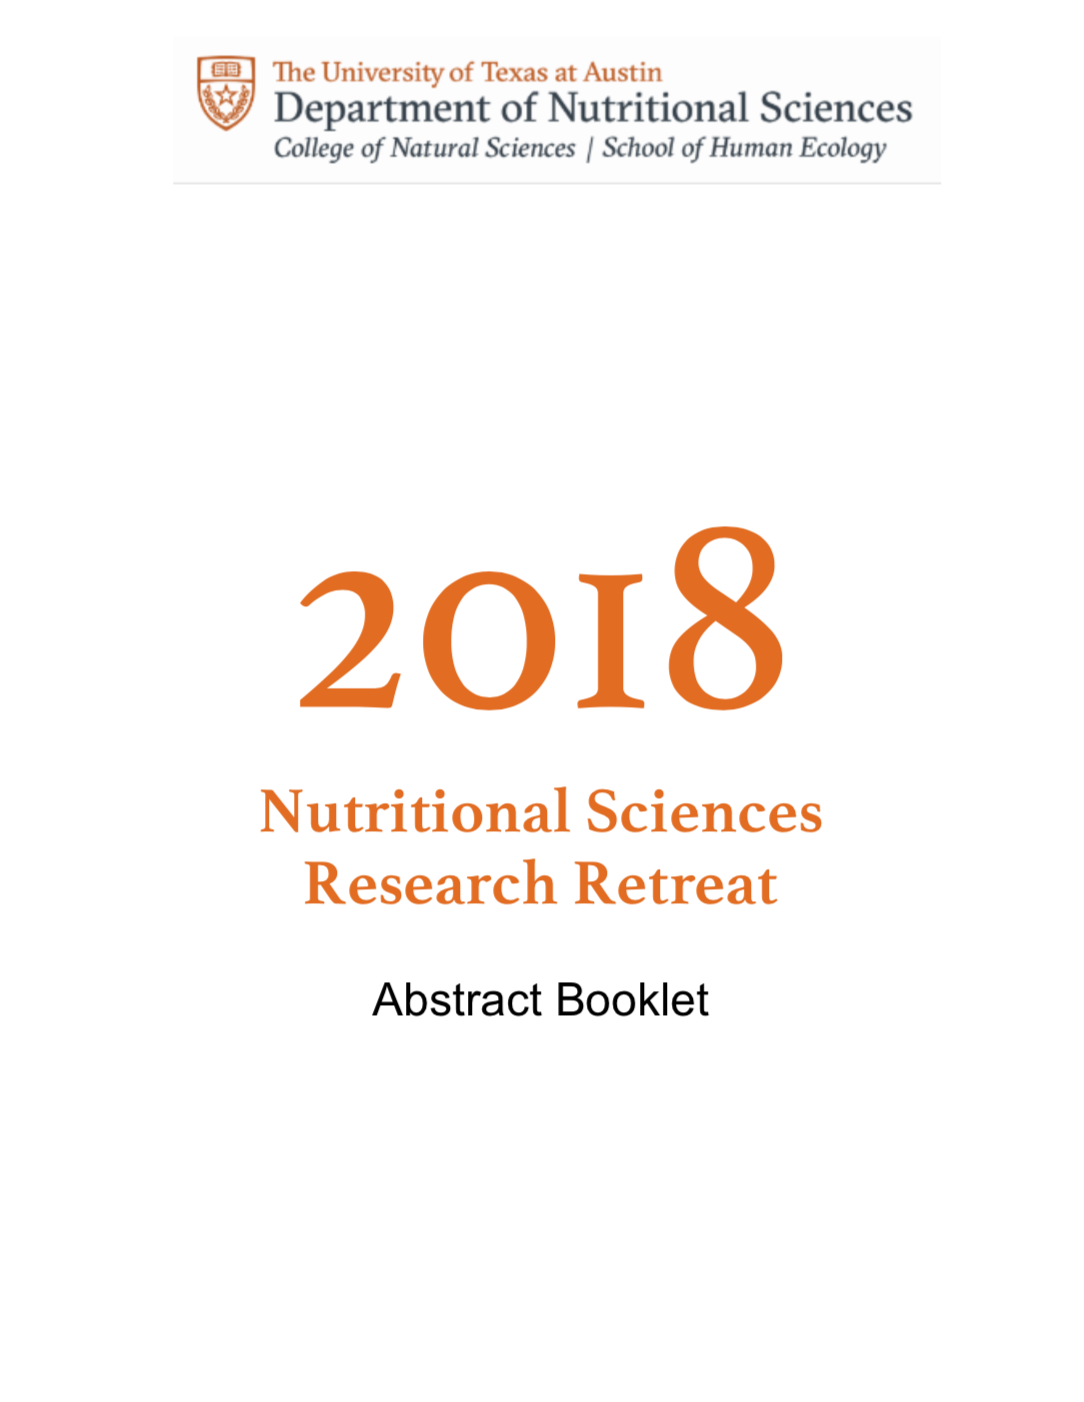 2018 Nutrition Research Retreat